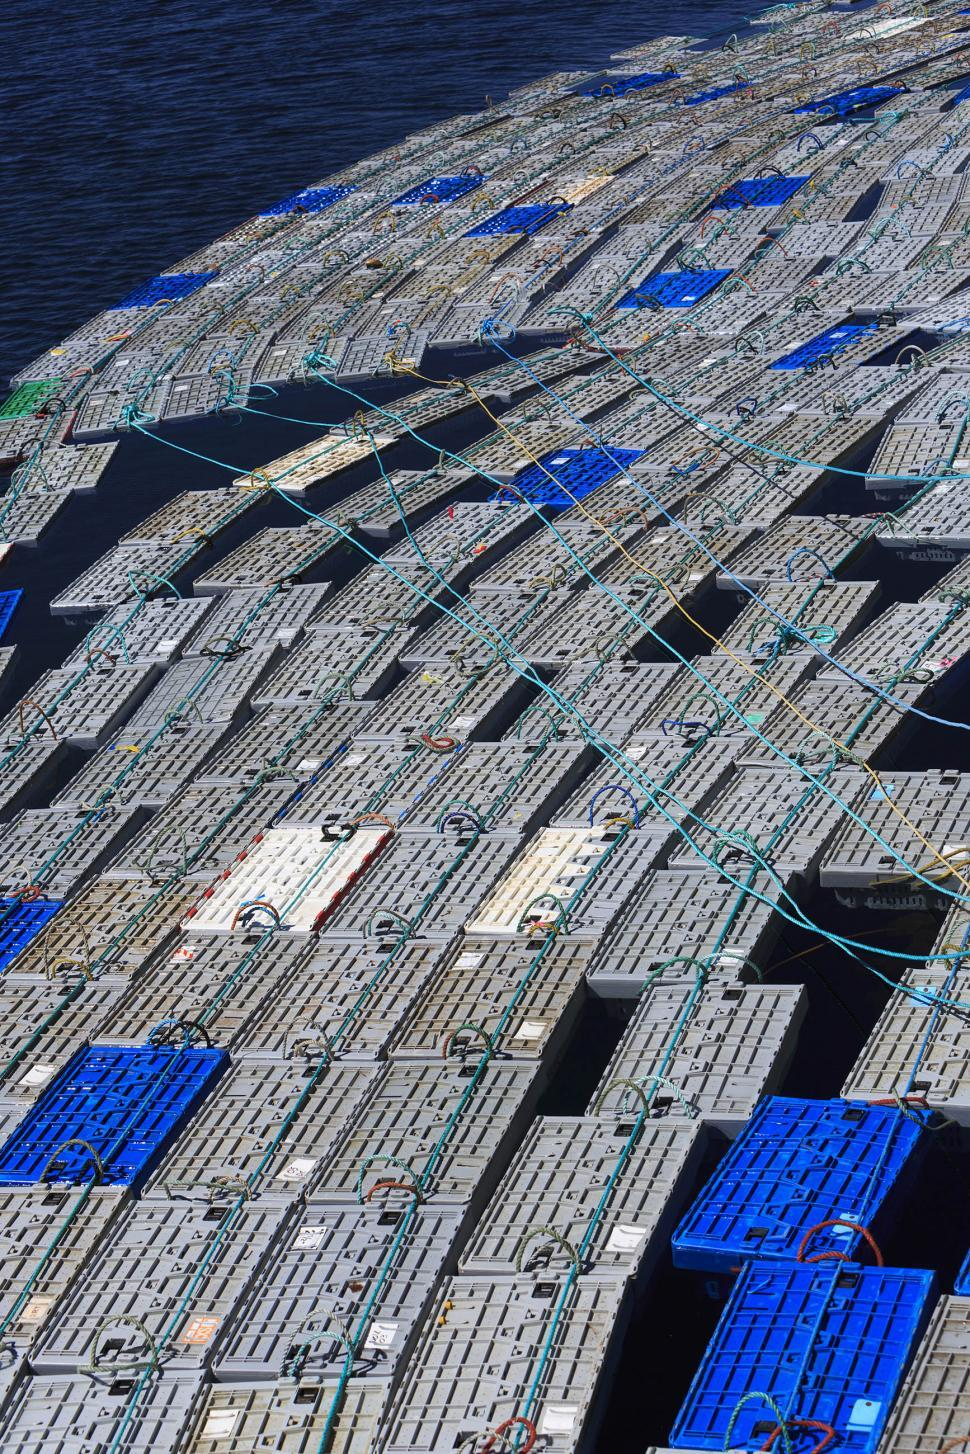 Download Free Stock HD Photo of lobster pens Online